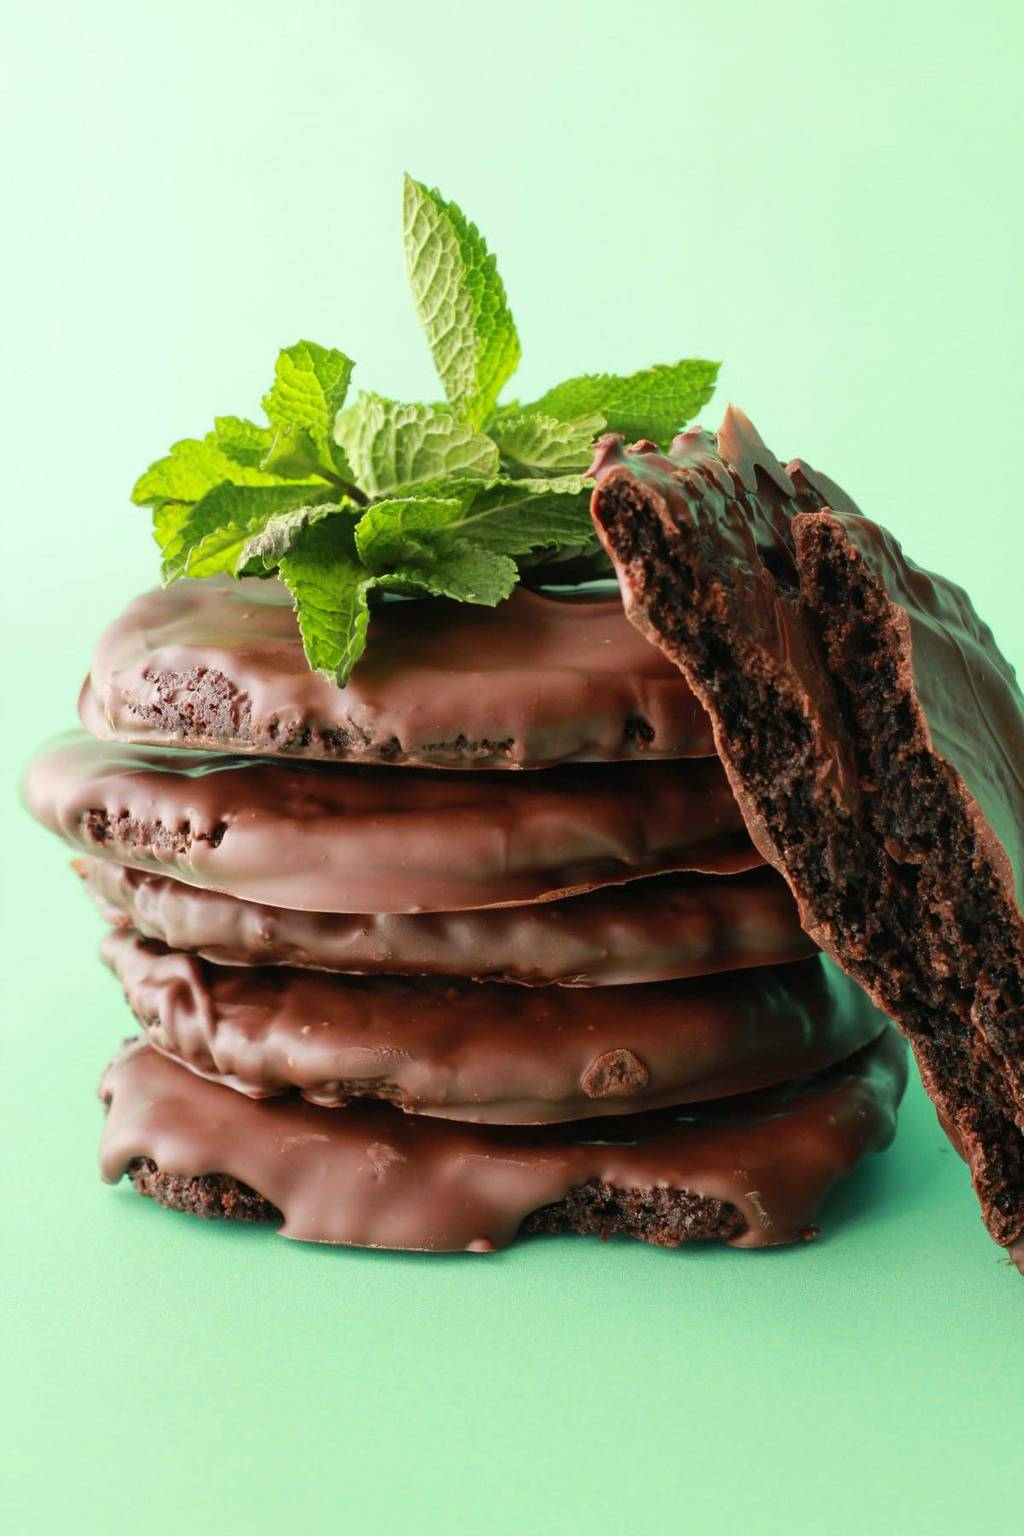 Vegan Thin Mint Cookies smothered in minty dark chocolate! #vegan #lovingitvegan #cookies #dessert